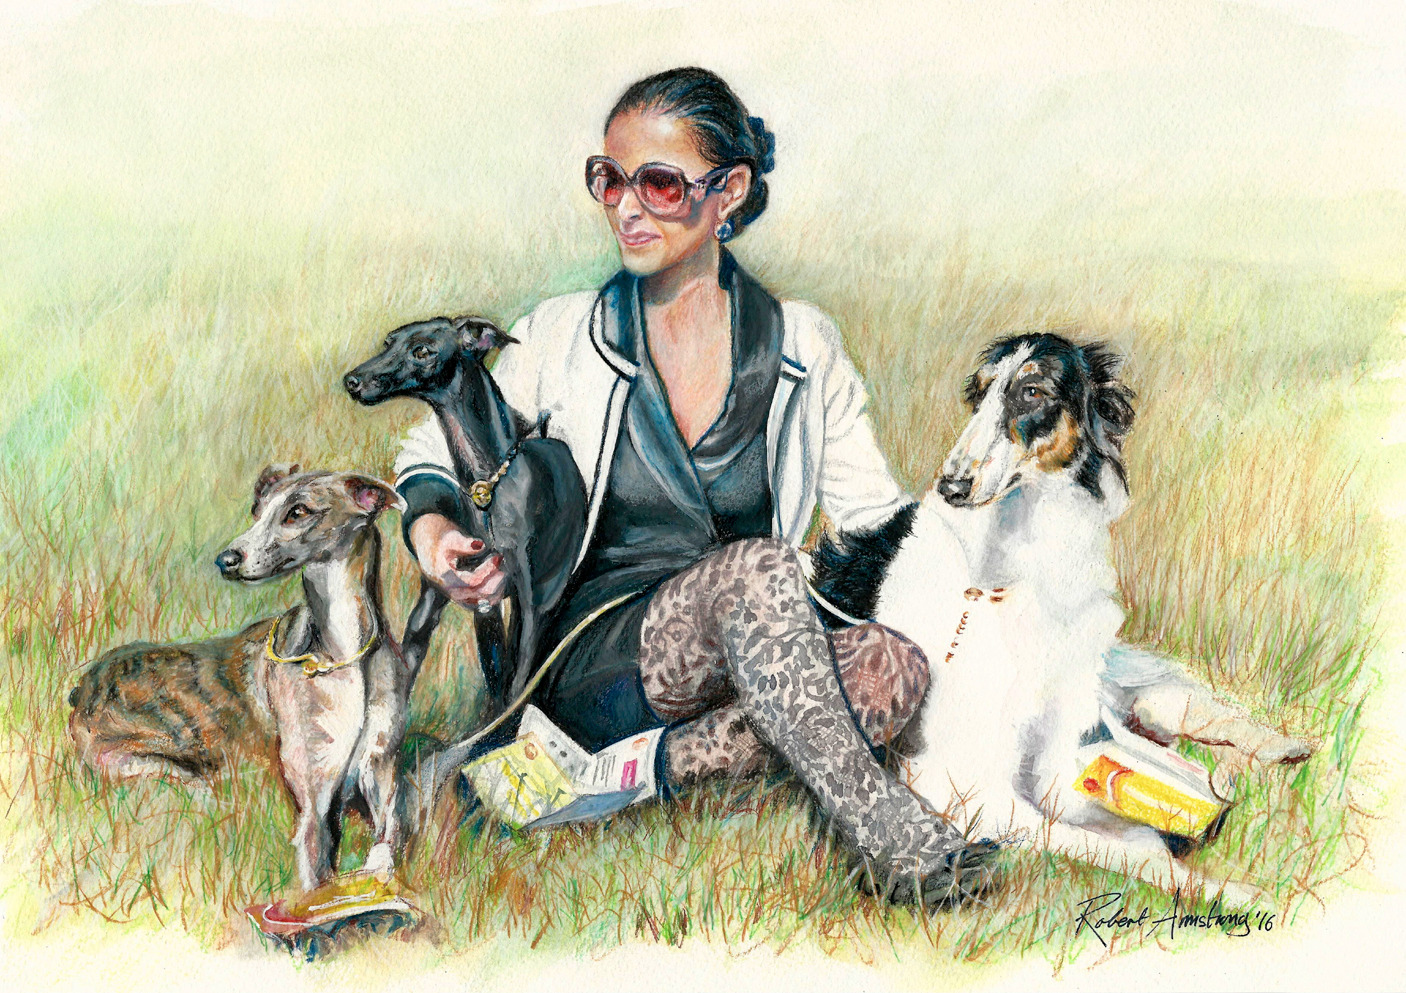 Andreia with her Dogs